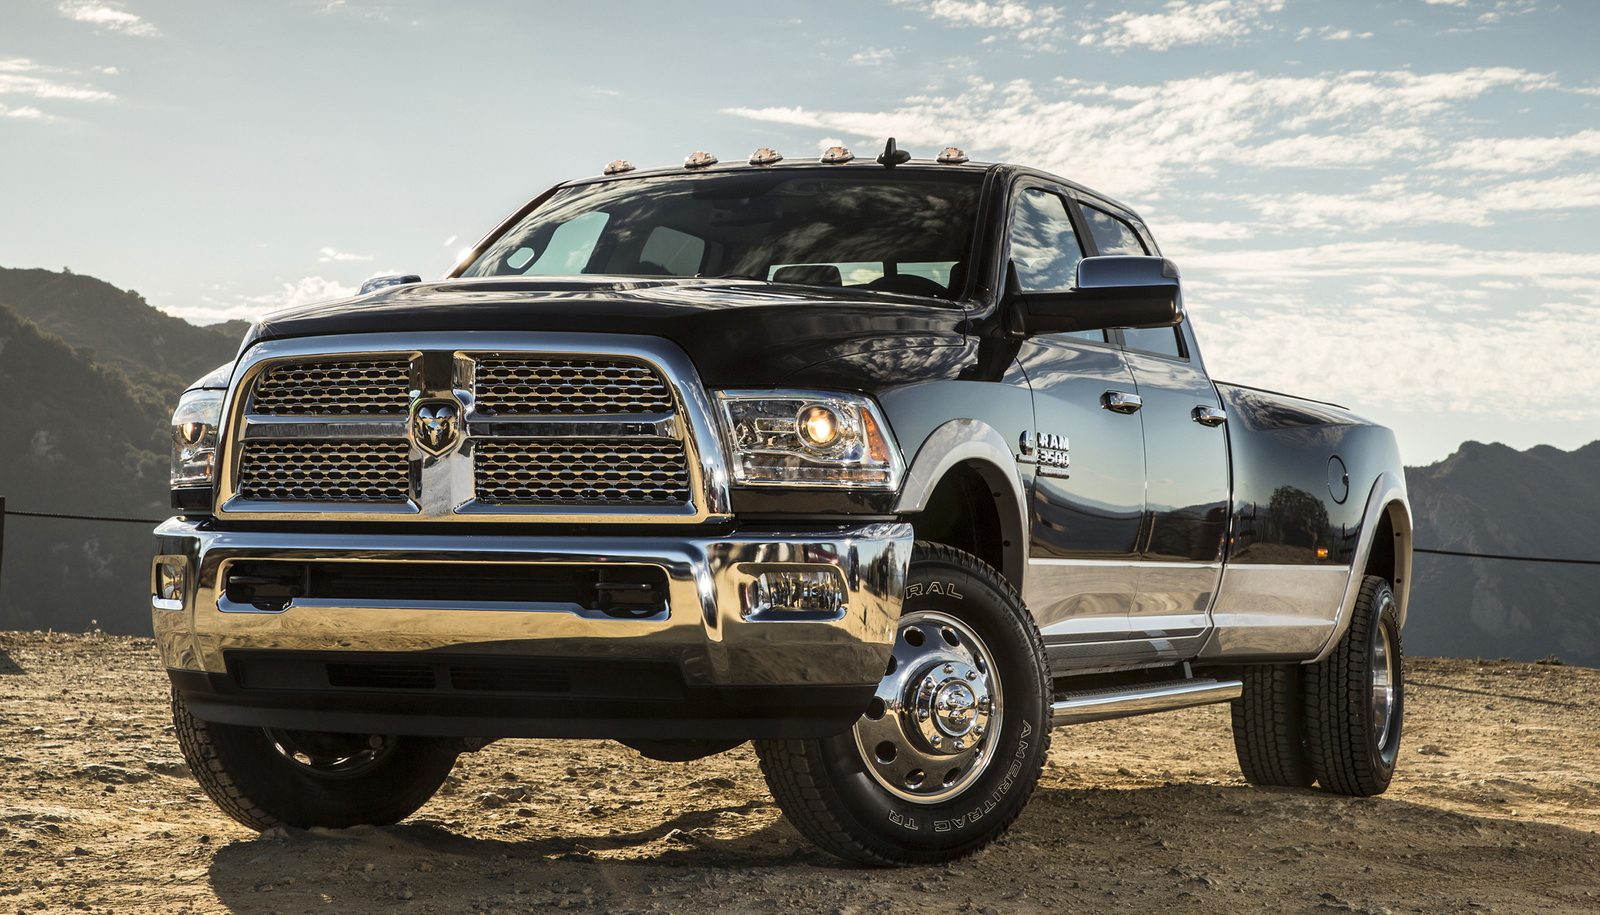 Most Expensive Truck In The World - Ram 3500 Mega Cab Longhorn Limited